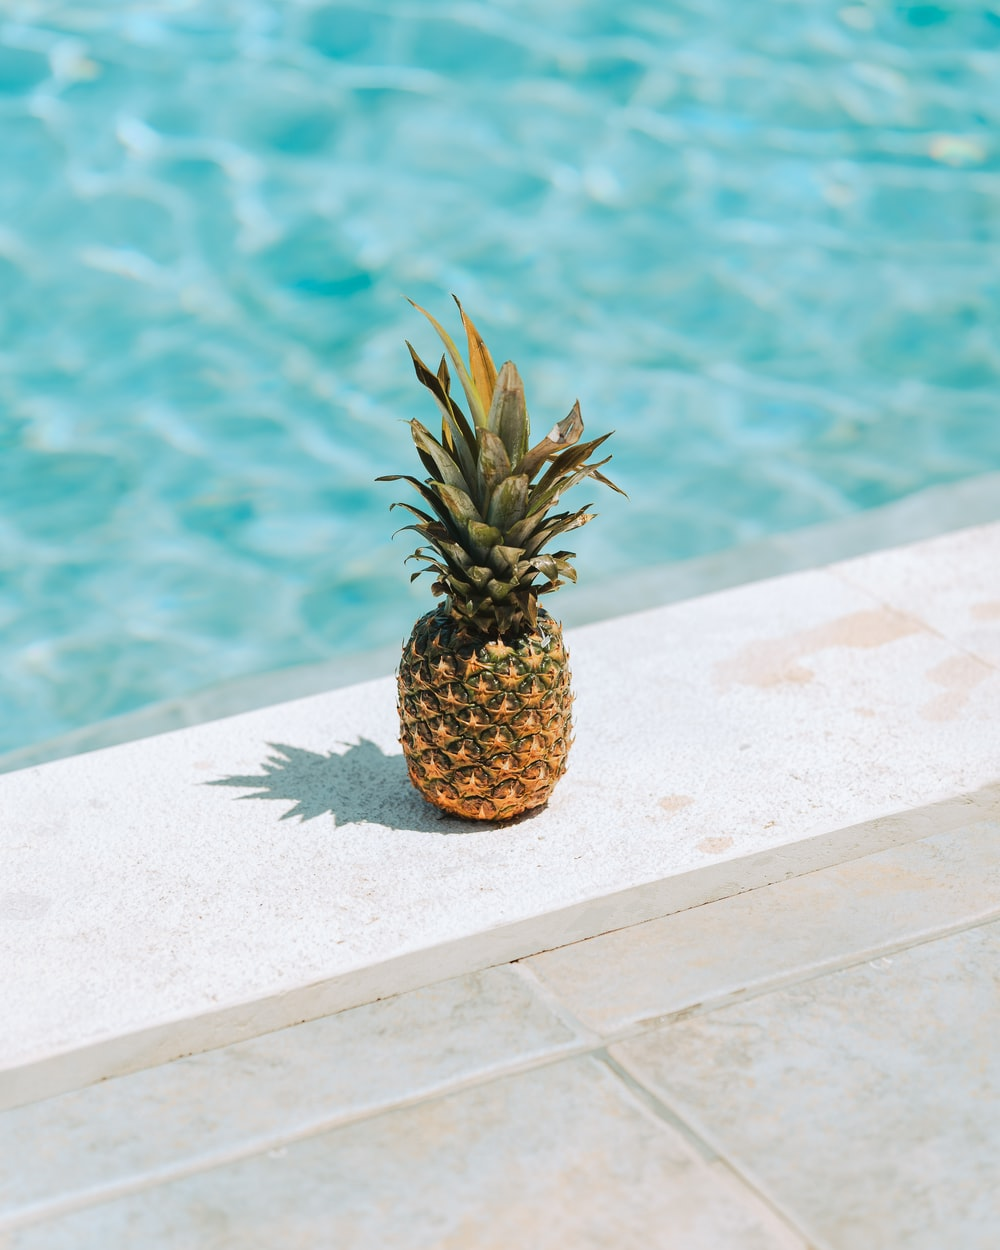 pineapple fruit on white concrete surface